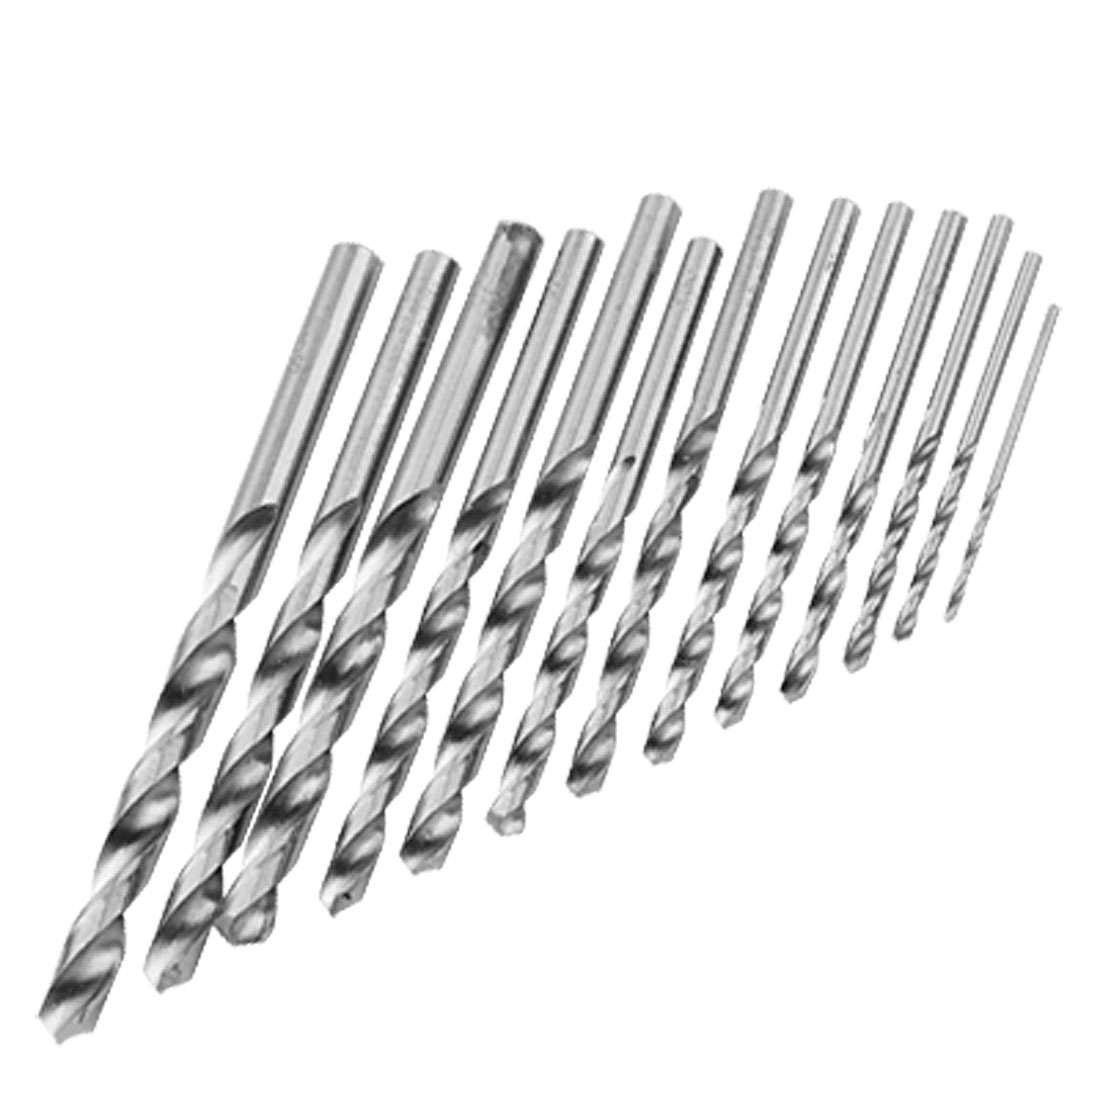 1.5mm to 6.5mm Diameter HSS Twist Spur Taper Shank Drill Bits